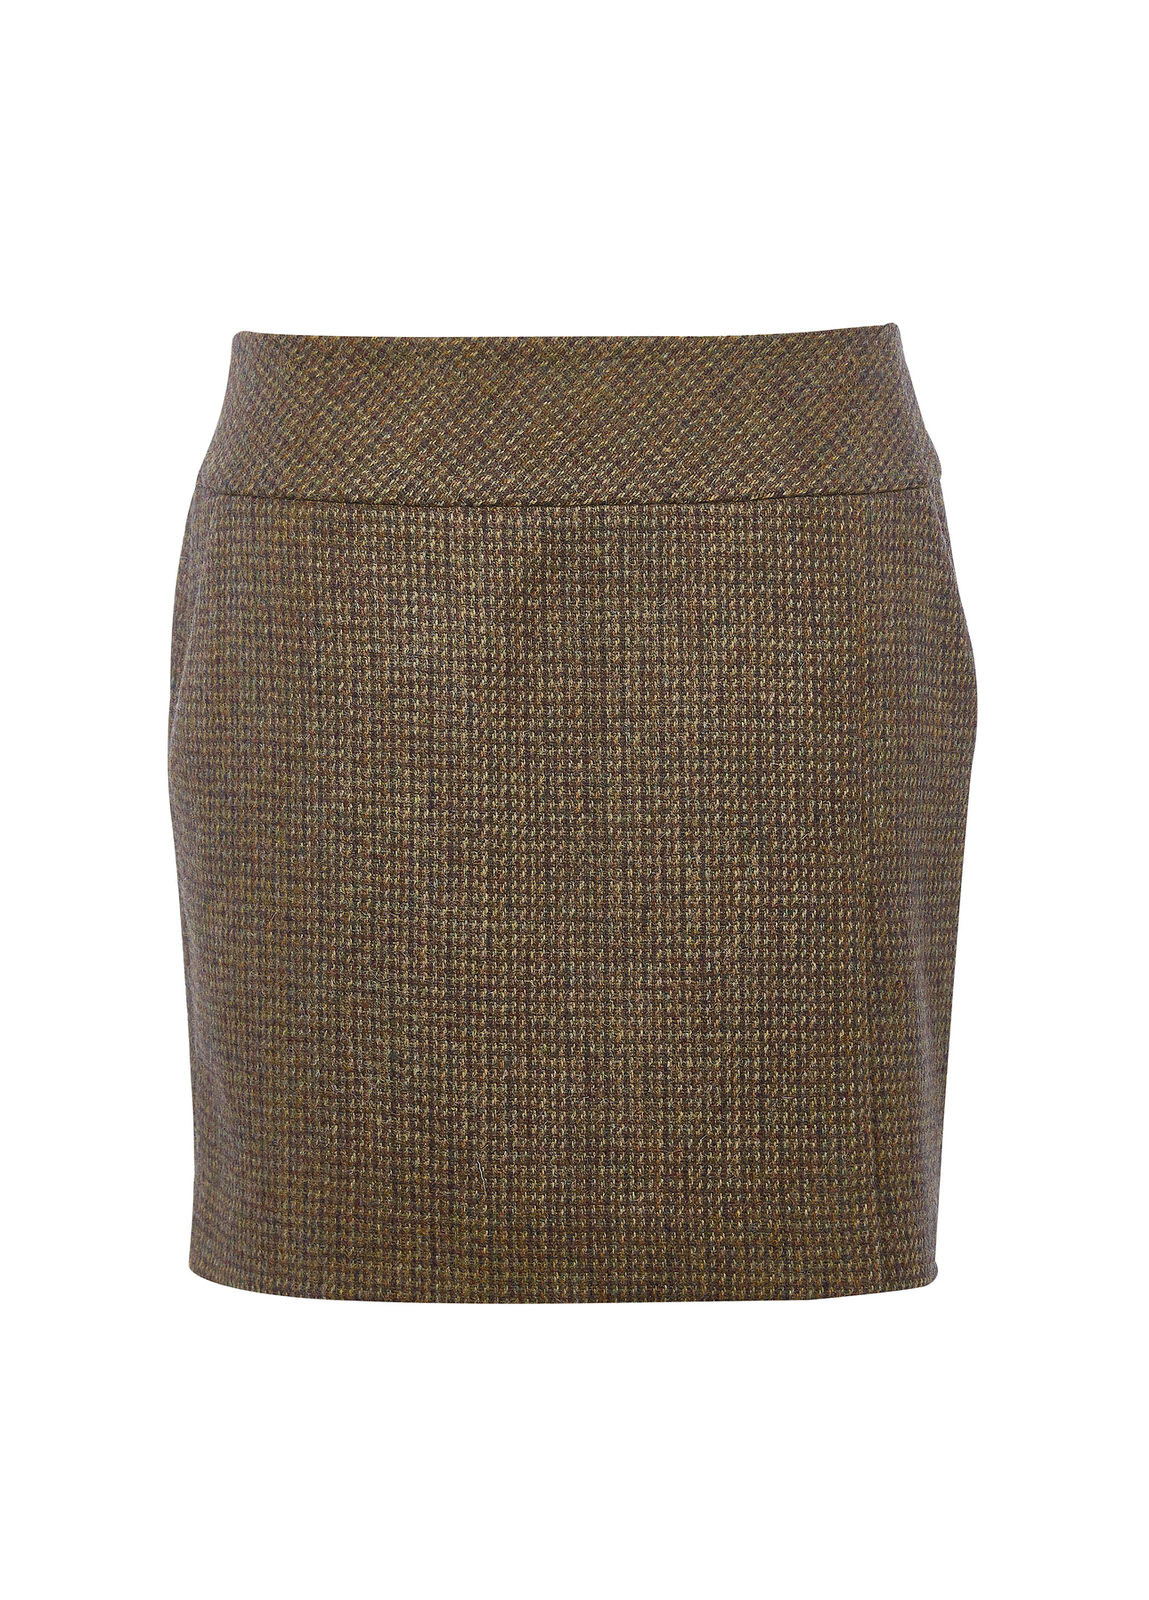 Bellflower_Tweed_Skirt_Heath_Image_1